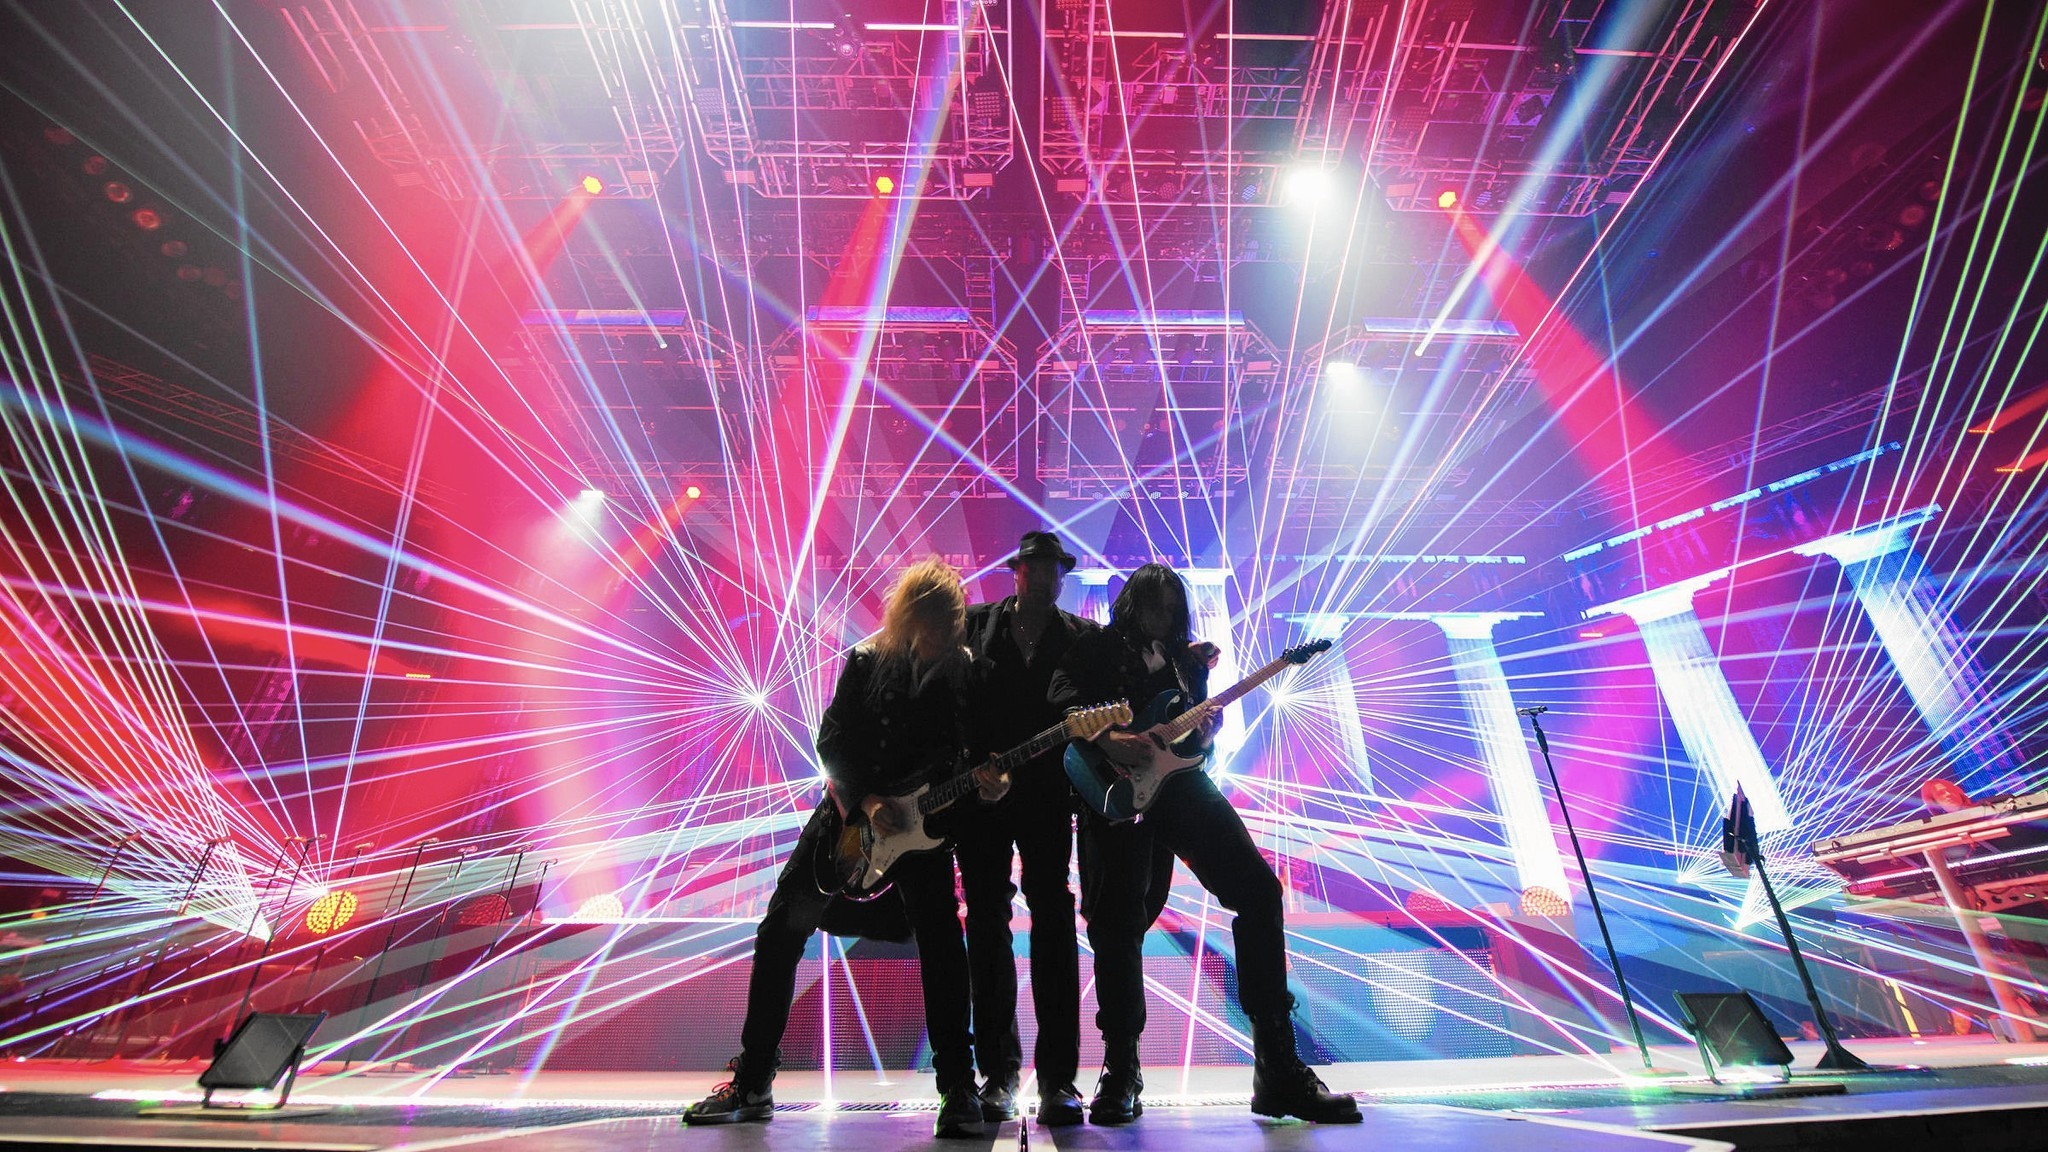 trans siberian orchestra resurrects 39 ghosts 39 at philadelphia show the morning call. Black Bedroom Furniture Sets. Home Design Ideas